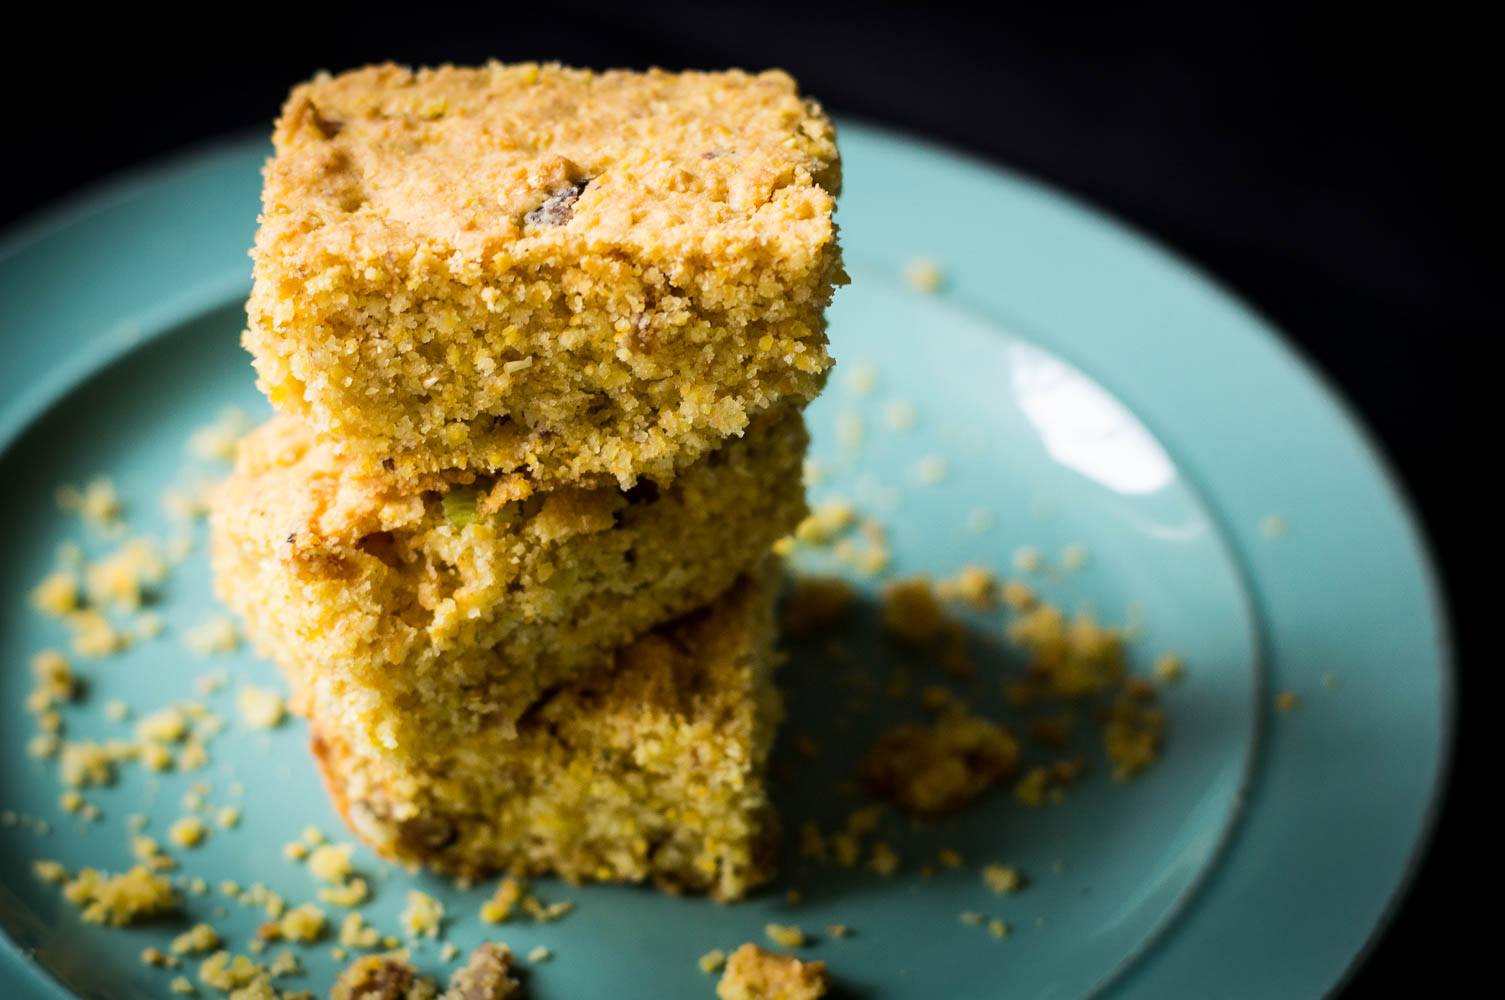 gluten-free egg-free cracklin' cornbread made with coarse cornmeal